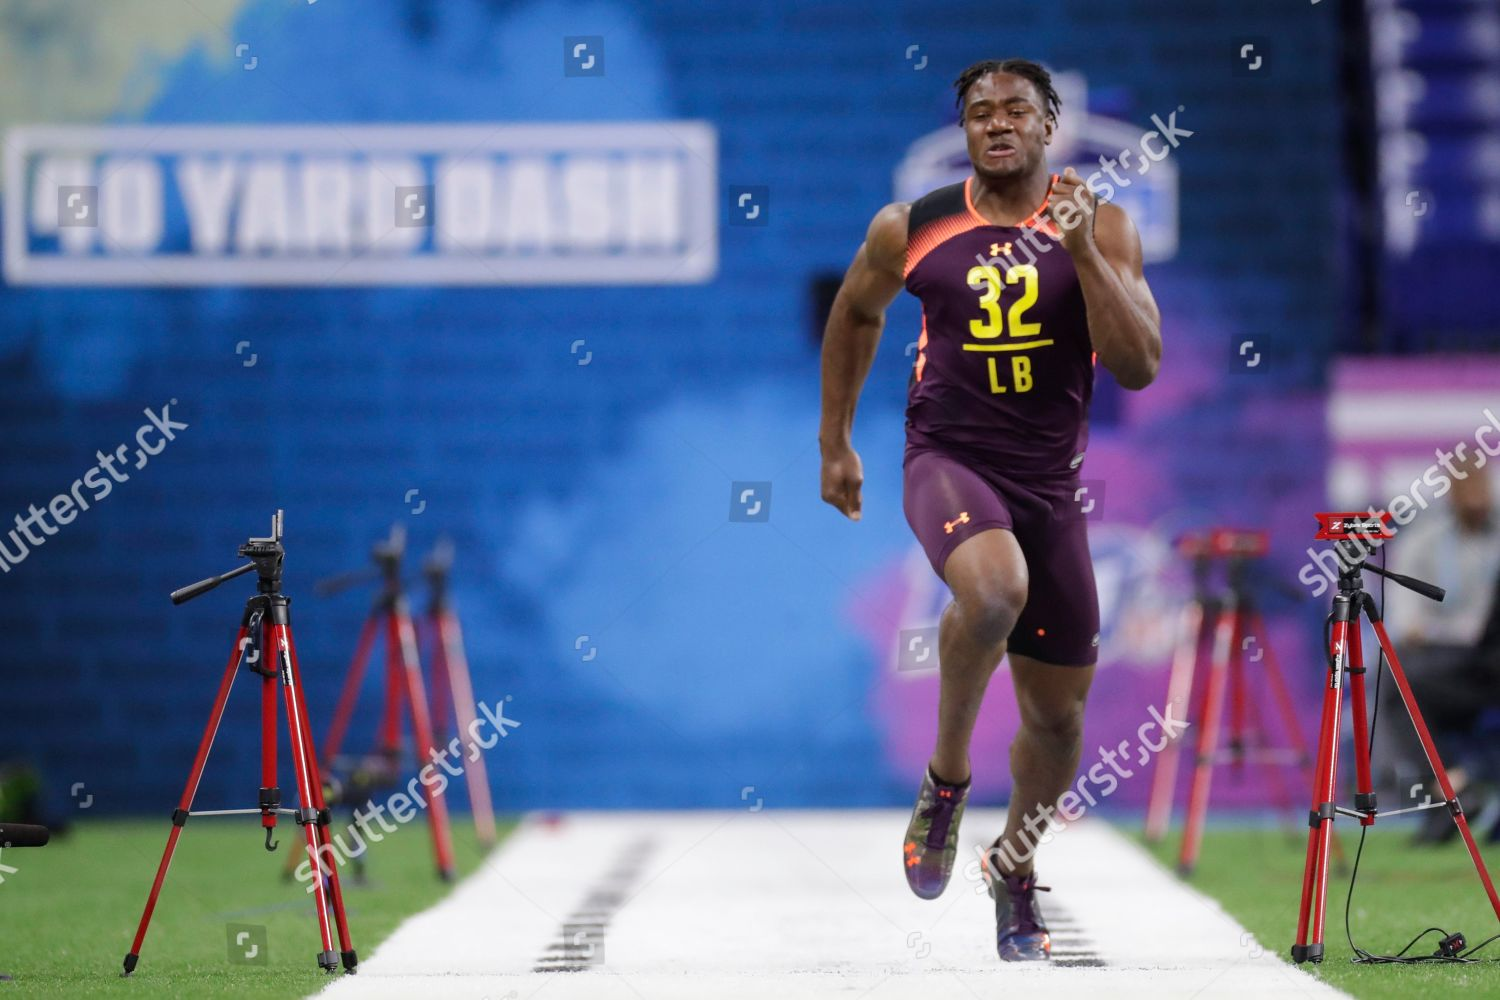 nfl-combine-football-indianapolis-usa-sh